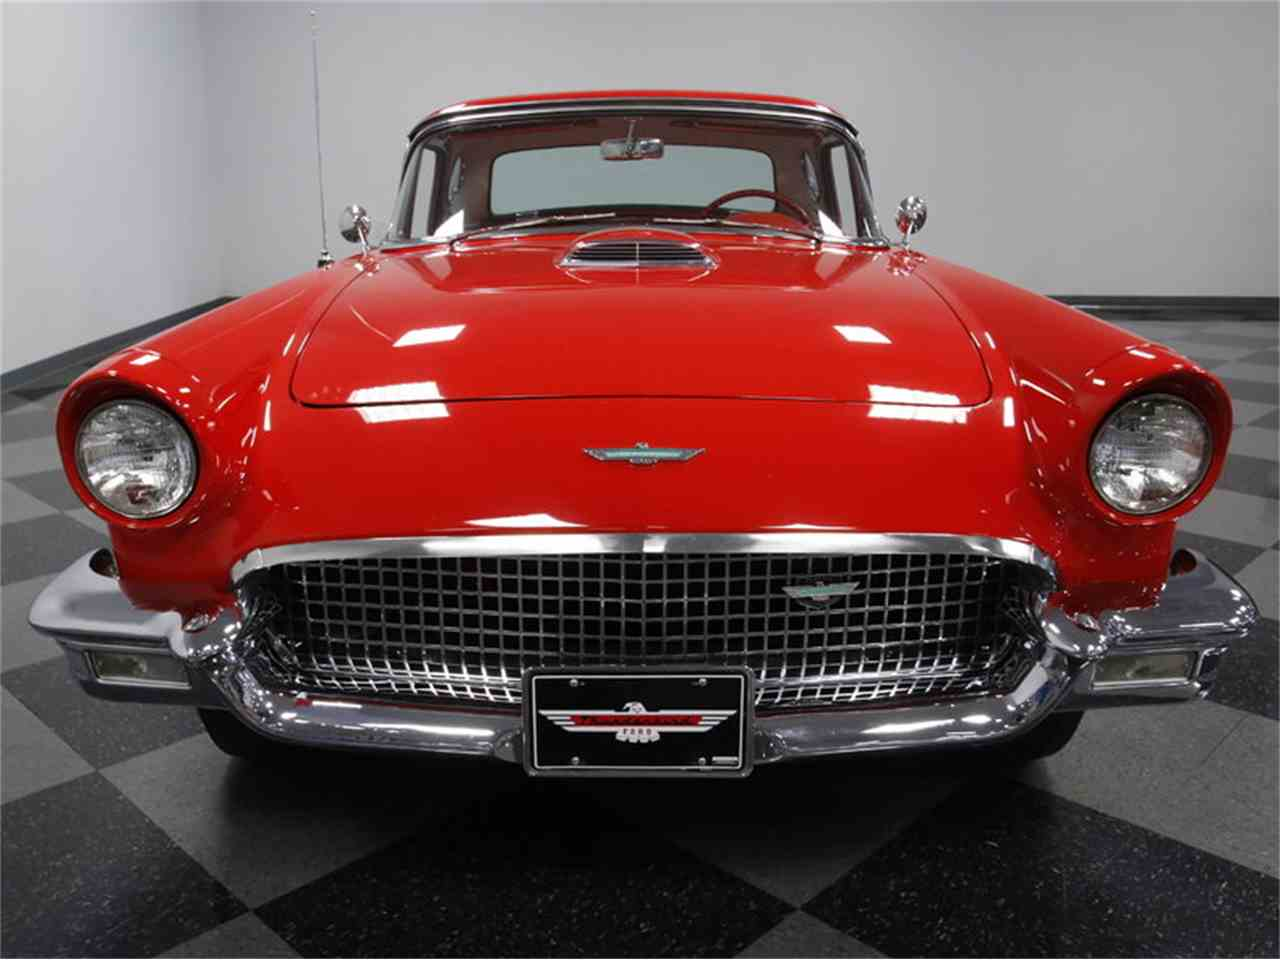 Large Picture of '57 Thunderbird located in Concord North Carolina - $41,995.00 - LSNS